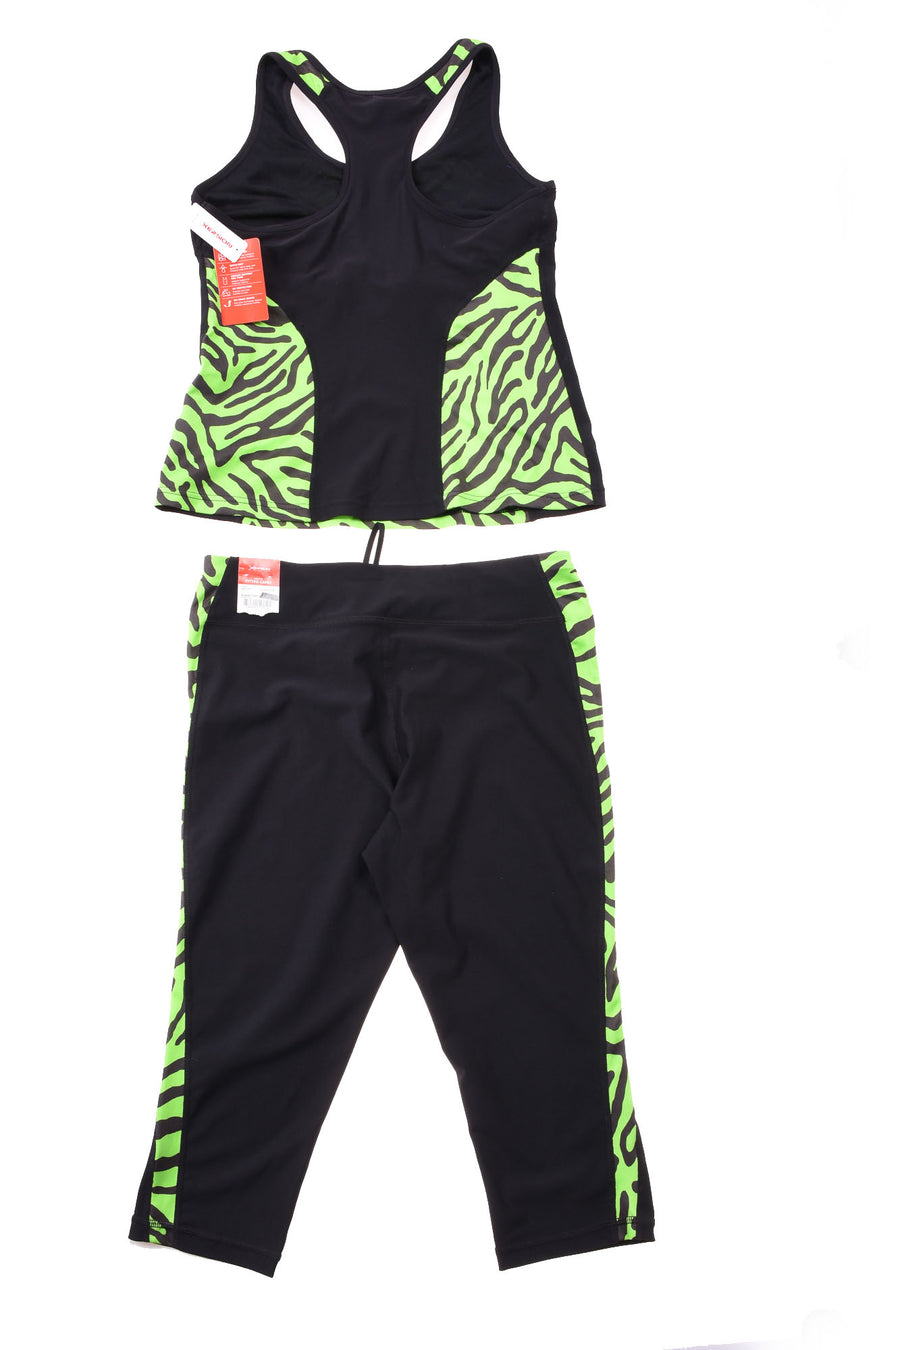 NEW Xersion Women's Athletic Set Large Black & Green